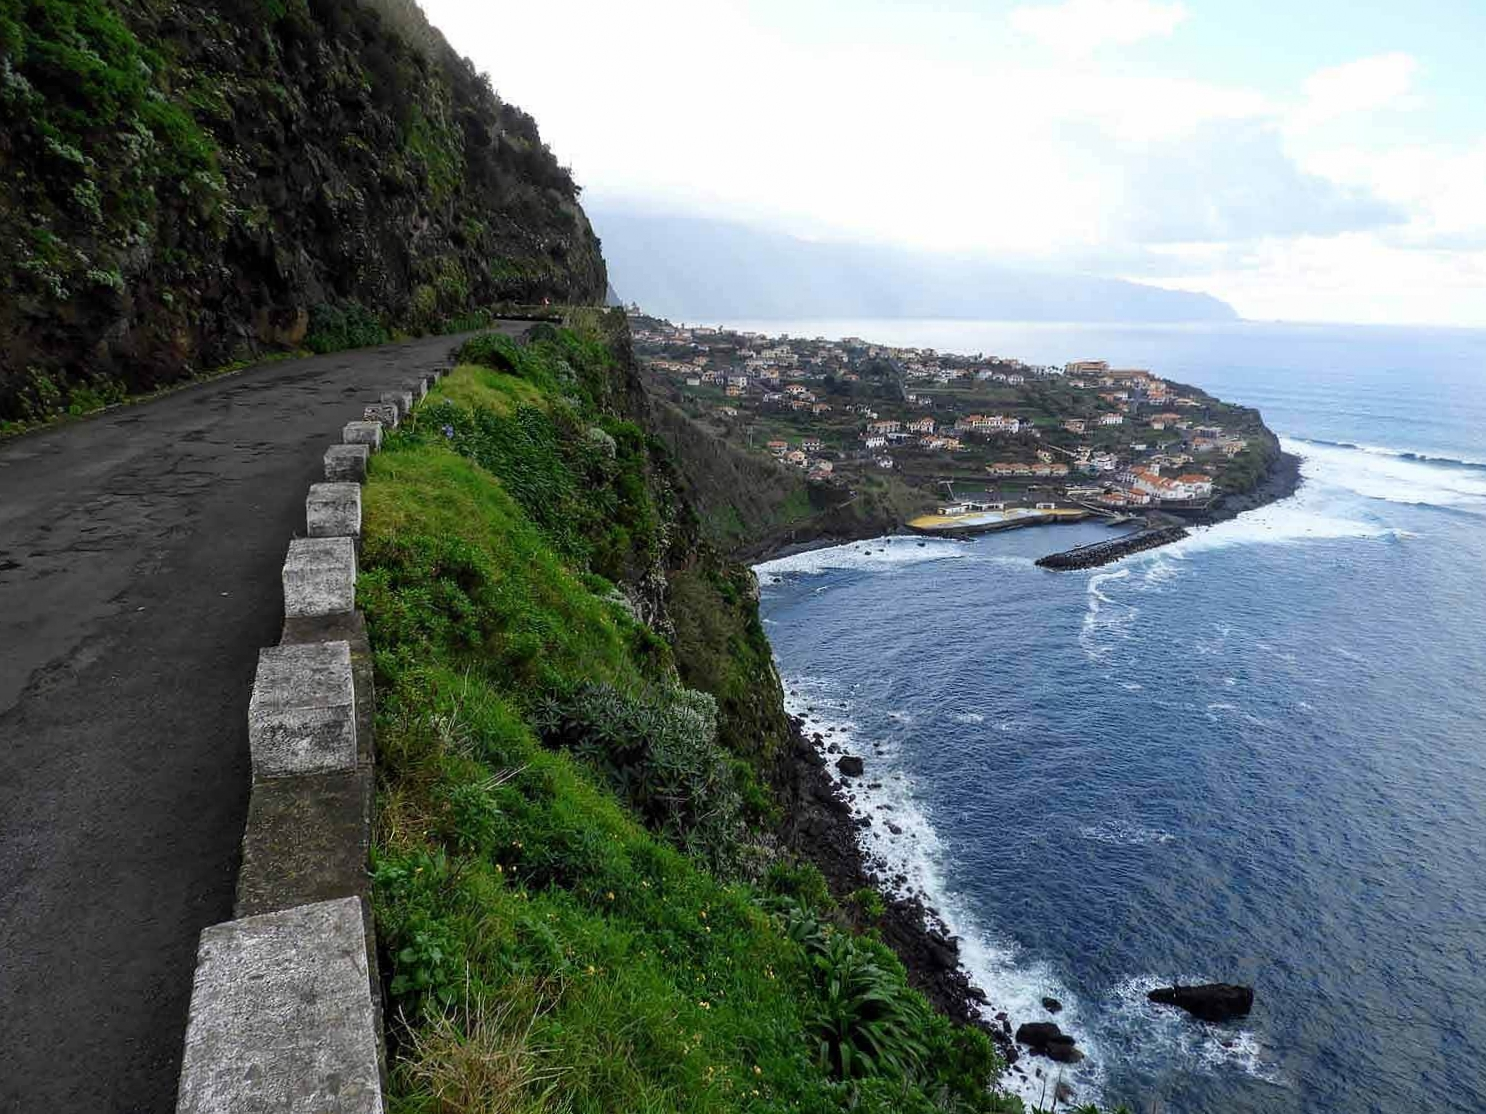 - Driving in Madeira may take some additional caution than you are used to. Some secondary roads are quite wet, narrow, have steep drop offs with no shoulder and may require you to yield to oncoming traffic. Driving in Madeira often reminded us of driving in the Faroe Islands.Overall exploring the island by car is very easy. There are many tunnels linking various parts of the island which saves time transiting through otherwise steep mountain roads. In order to arrive at the starting points for the majority of hikes a car is usually required.